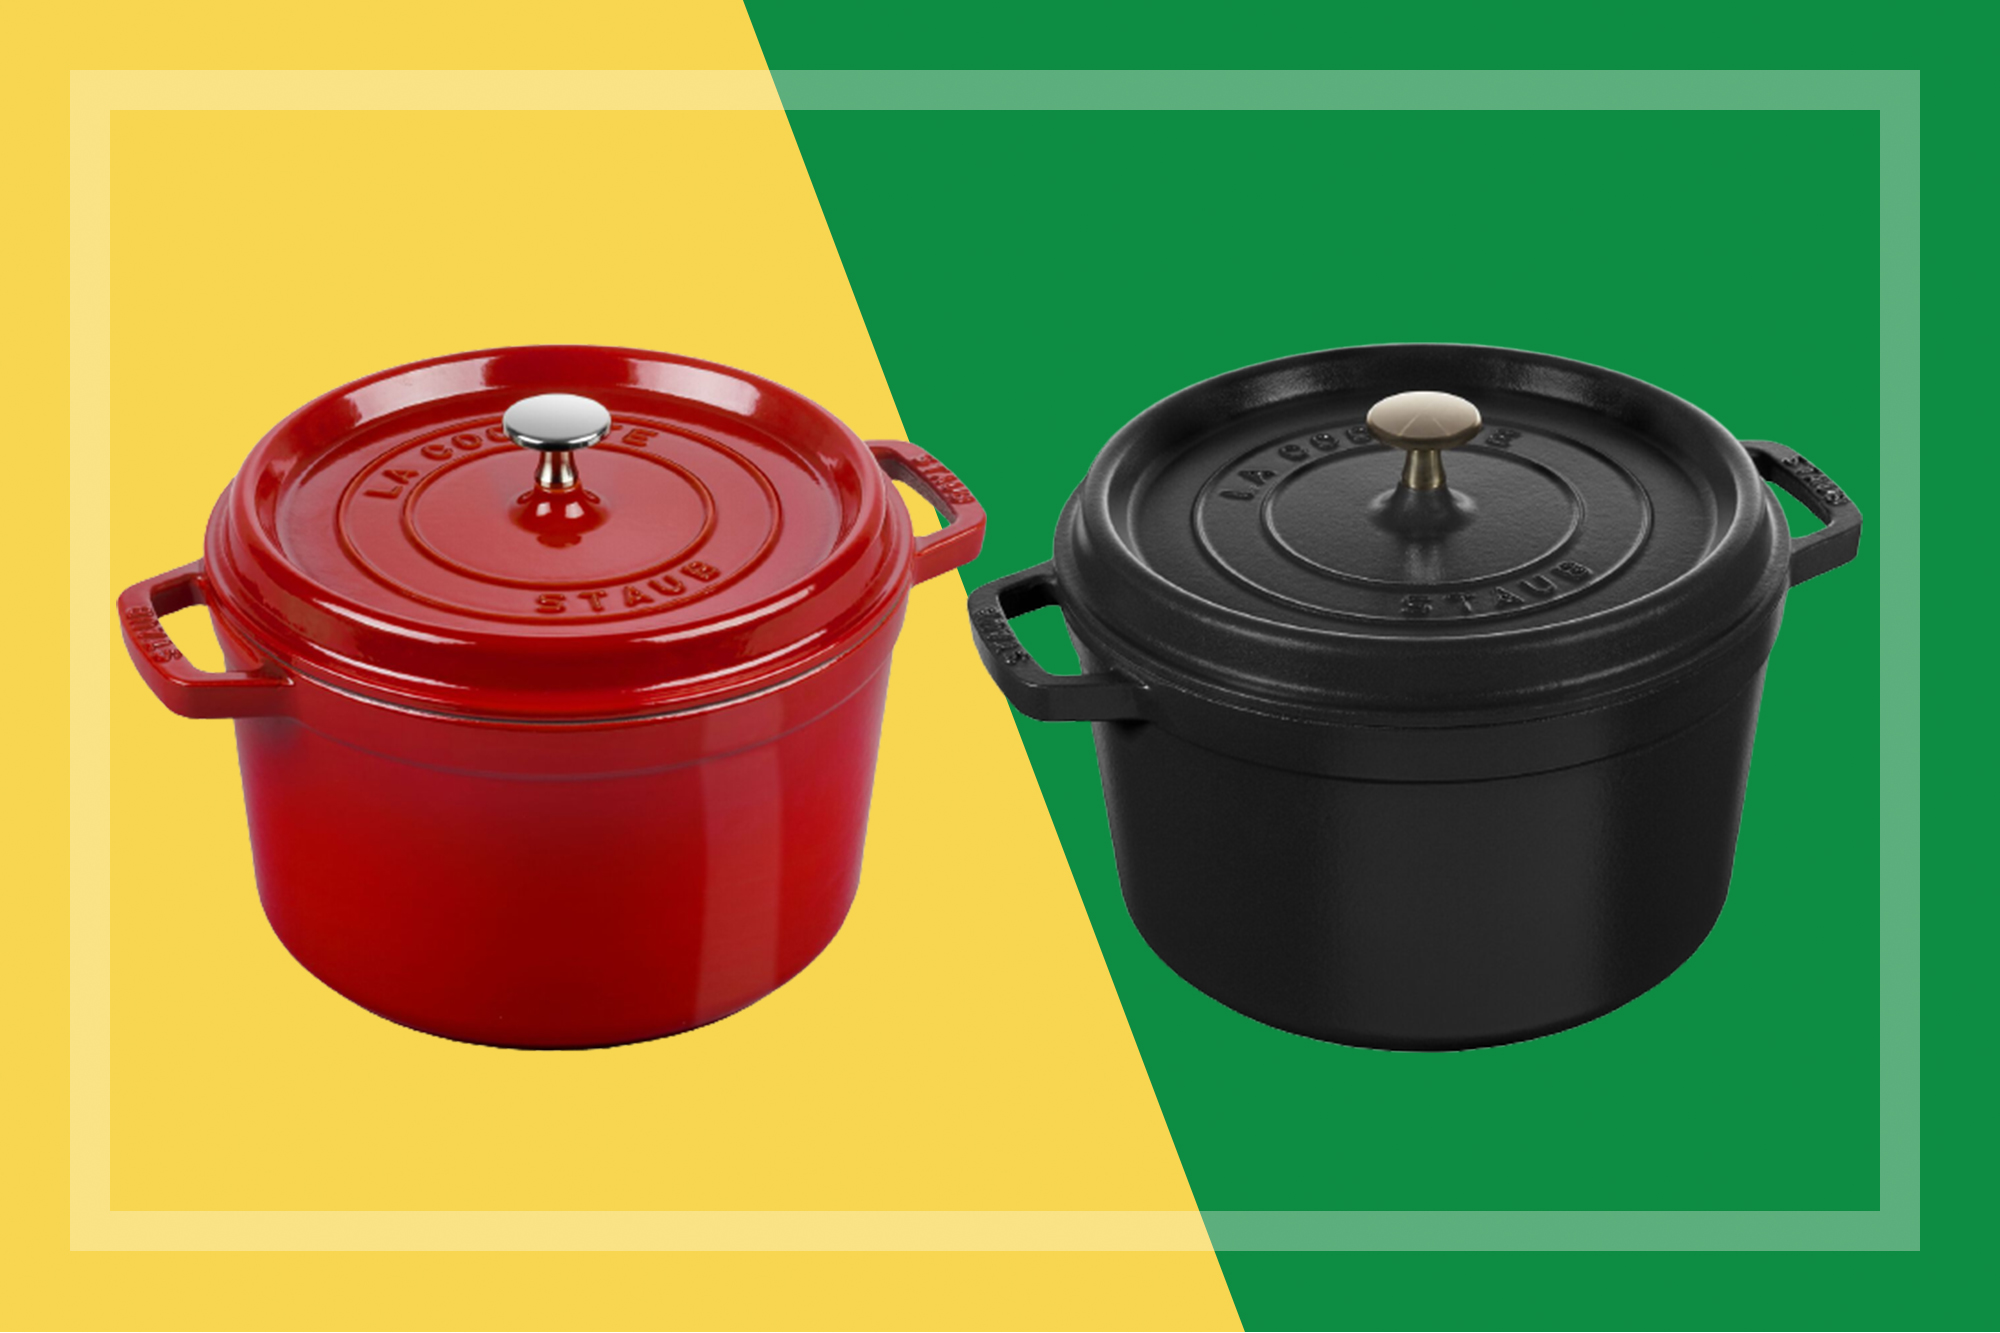 zwilling sale staub cocotte